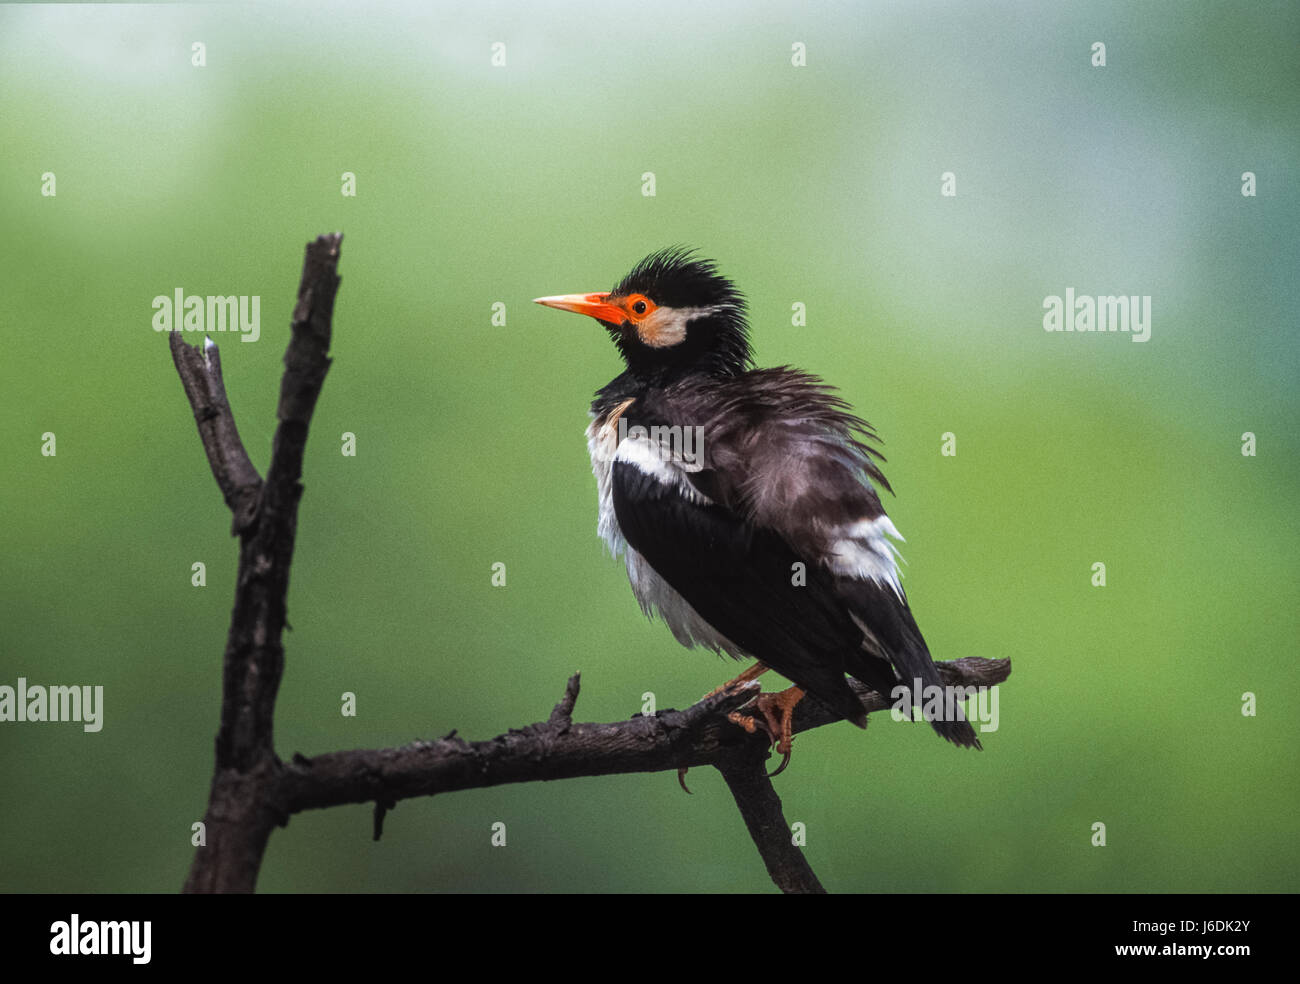 Pied Myna,(Gracupica contra), also called Asian Pied Starling, shaking out feathers, Keoladeo Ghana National Park,India - Stock Image